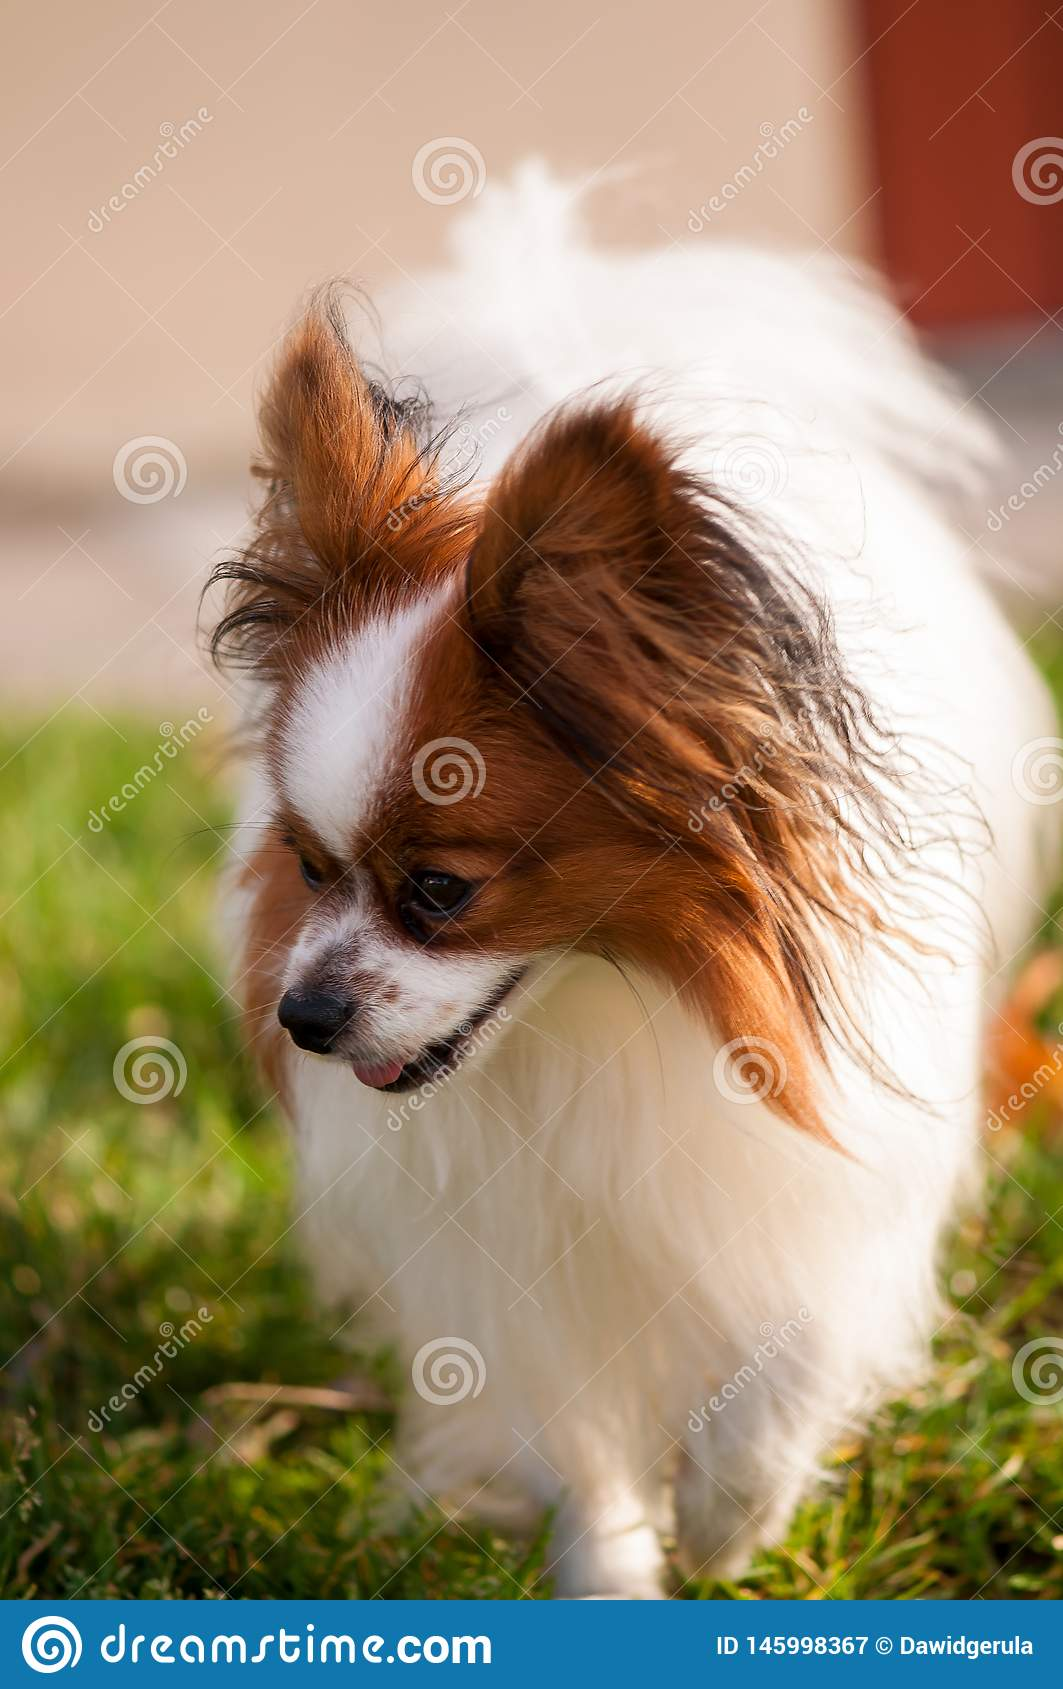 Concerned papillon dog walking on the grass